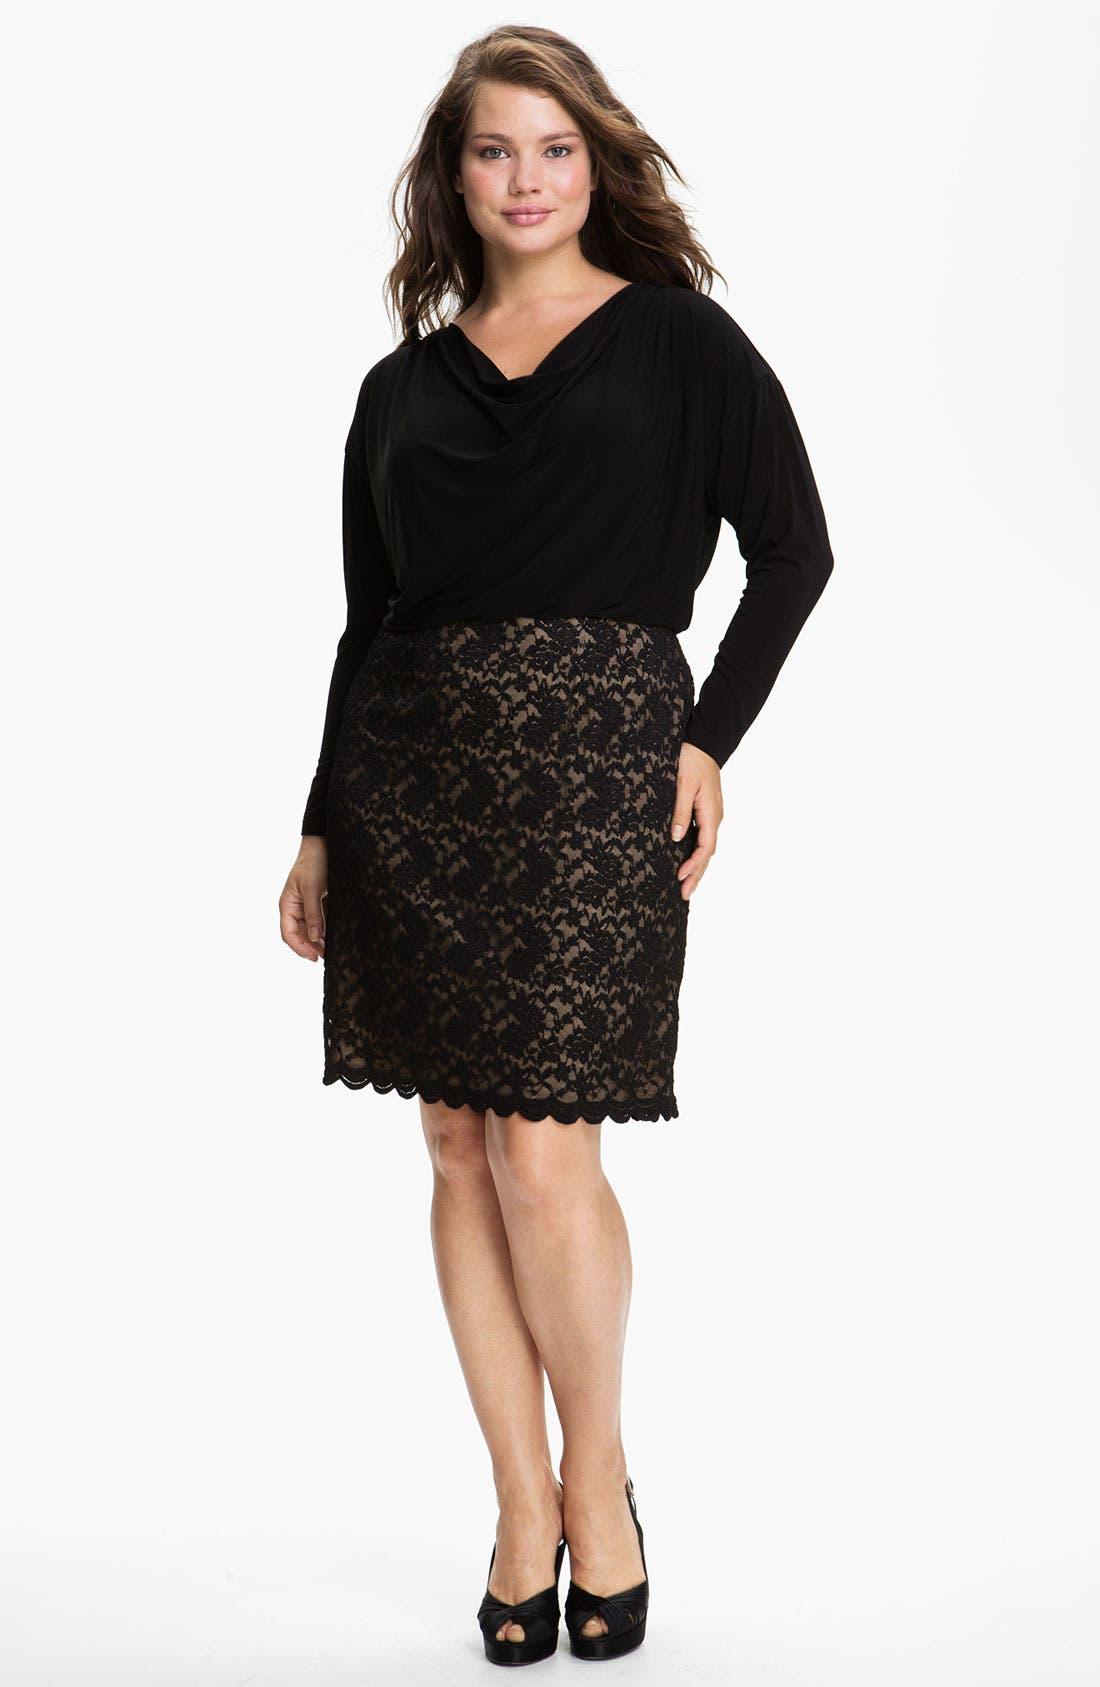 Main Image - Adrianna Papell Lace Skirt Blouson Dress (Plus)